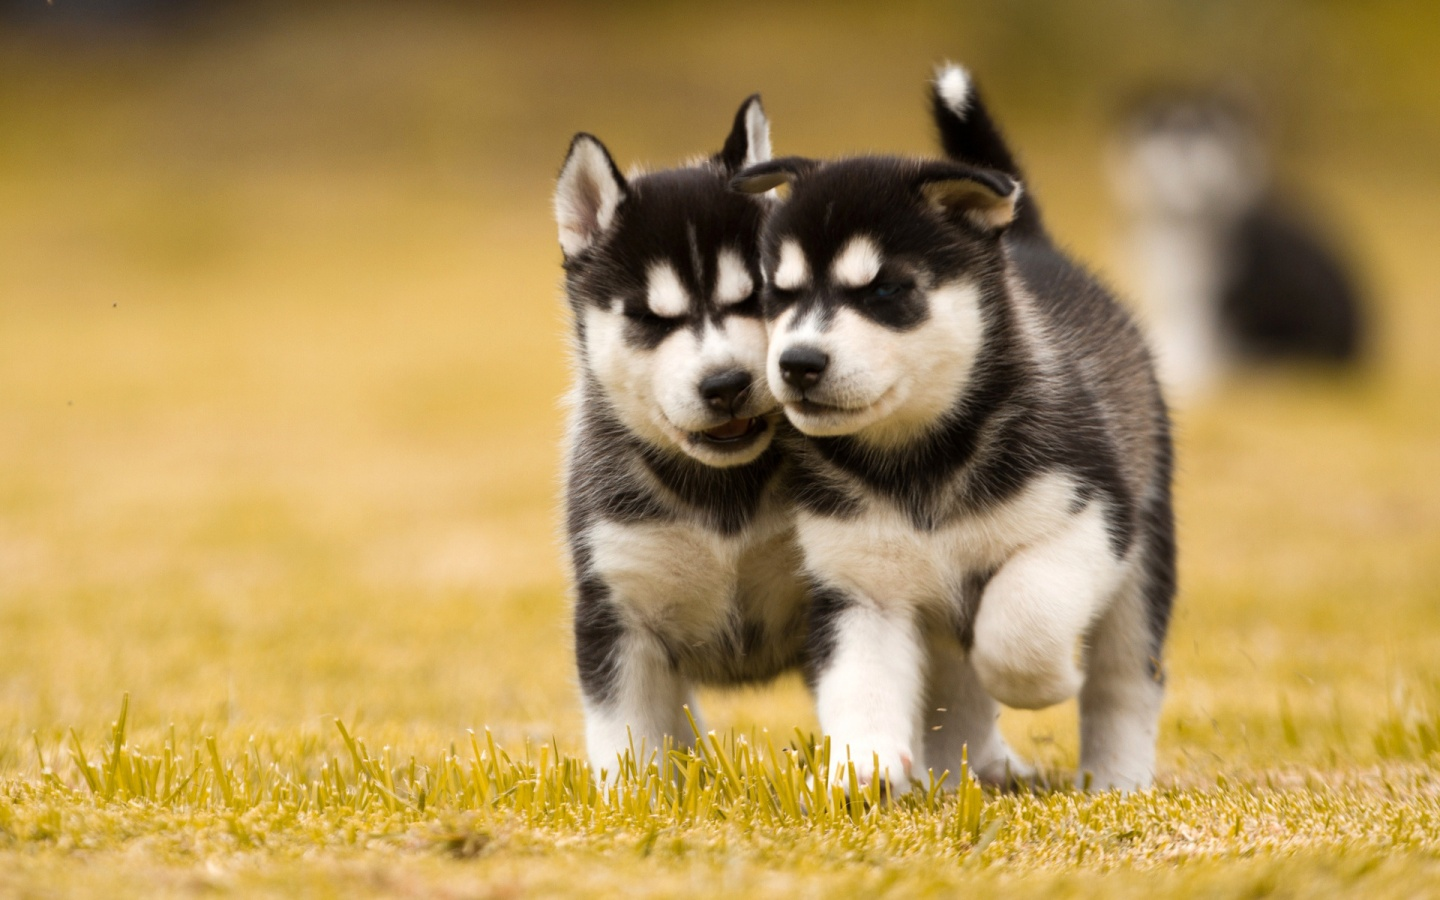 Perros Husky Siberiano Fondos De Pantalla Hd De Animales 2: Two Husky Dog Puppies Wallpapers